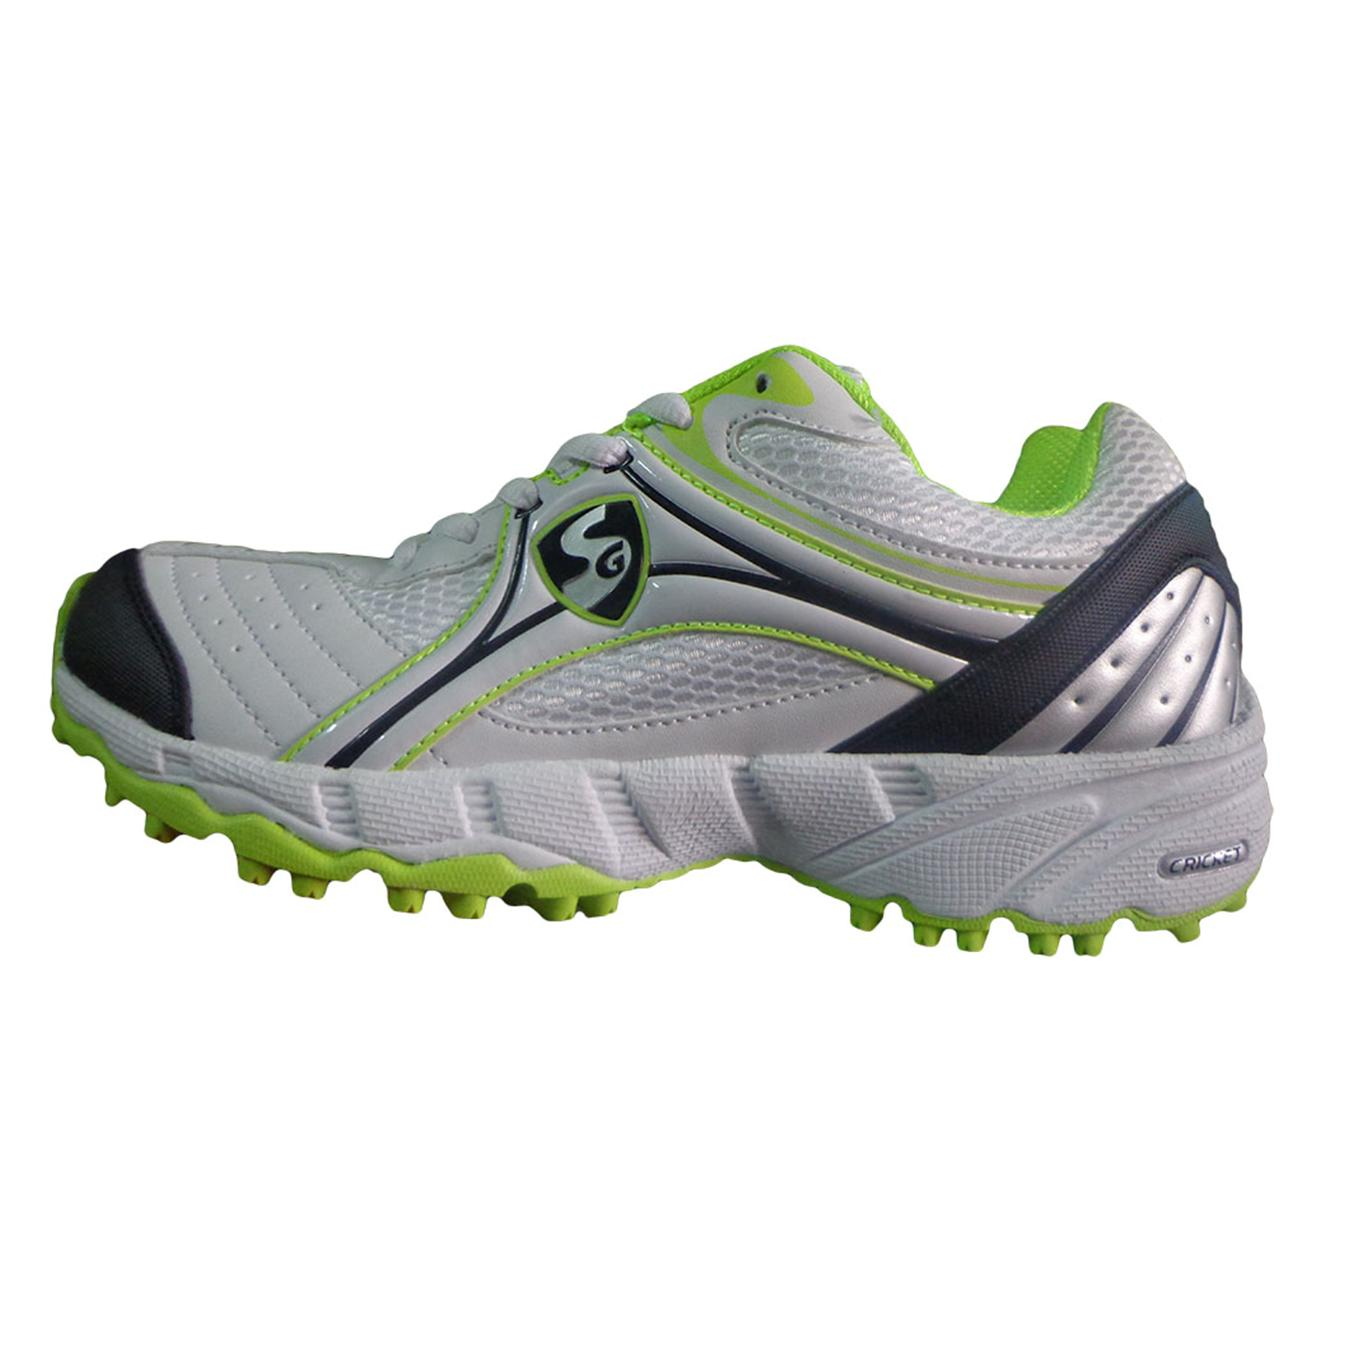 Sg Steadler Iv Cricket Shoes White Lime And Black Buy Sg